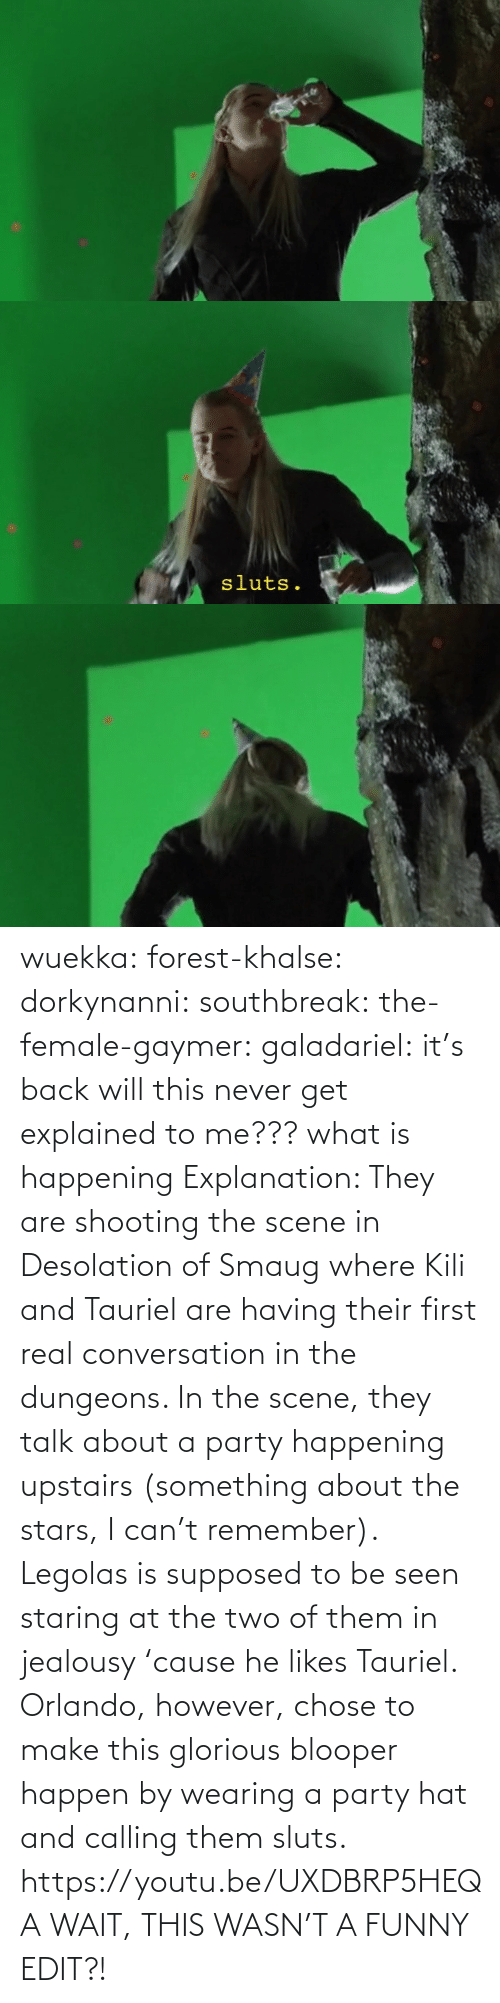 Funny: wuekka: forest-khalse:   dorkynanni:  southbreak:   the-female-gaymer:   galadariel:  it's back   will this never get explained to me???    what is happening    Explanation:  They are shooting the scene in Desolation of Smaug where Kili and Tauriel are having their first real conversation in the dungeons.  In the scene, they talk about a party happening upstairs (something about the stars, I can't remember). Legolas is supposed to be seen staring at the two of them in jealousy 'cause he likes Tauriel.  Orlando, however, chose to make this glorious blooper happen by wearing a party hat and calling them sluts.    https://youtu.be/UXDBRP5HEQA    WAIT, THIS WASN'T A FUNNY EDIT?!